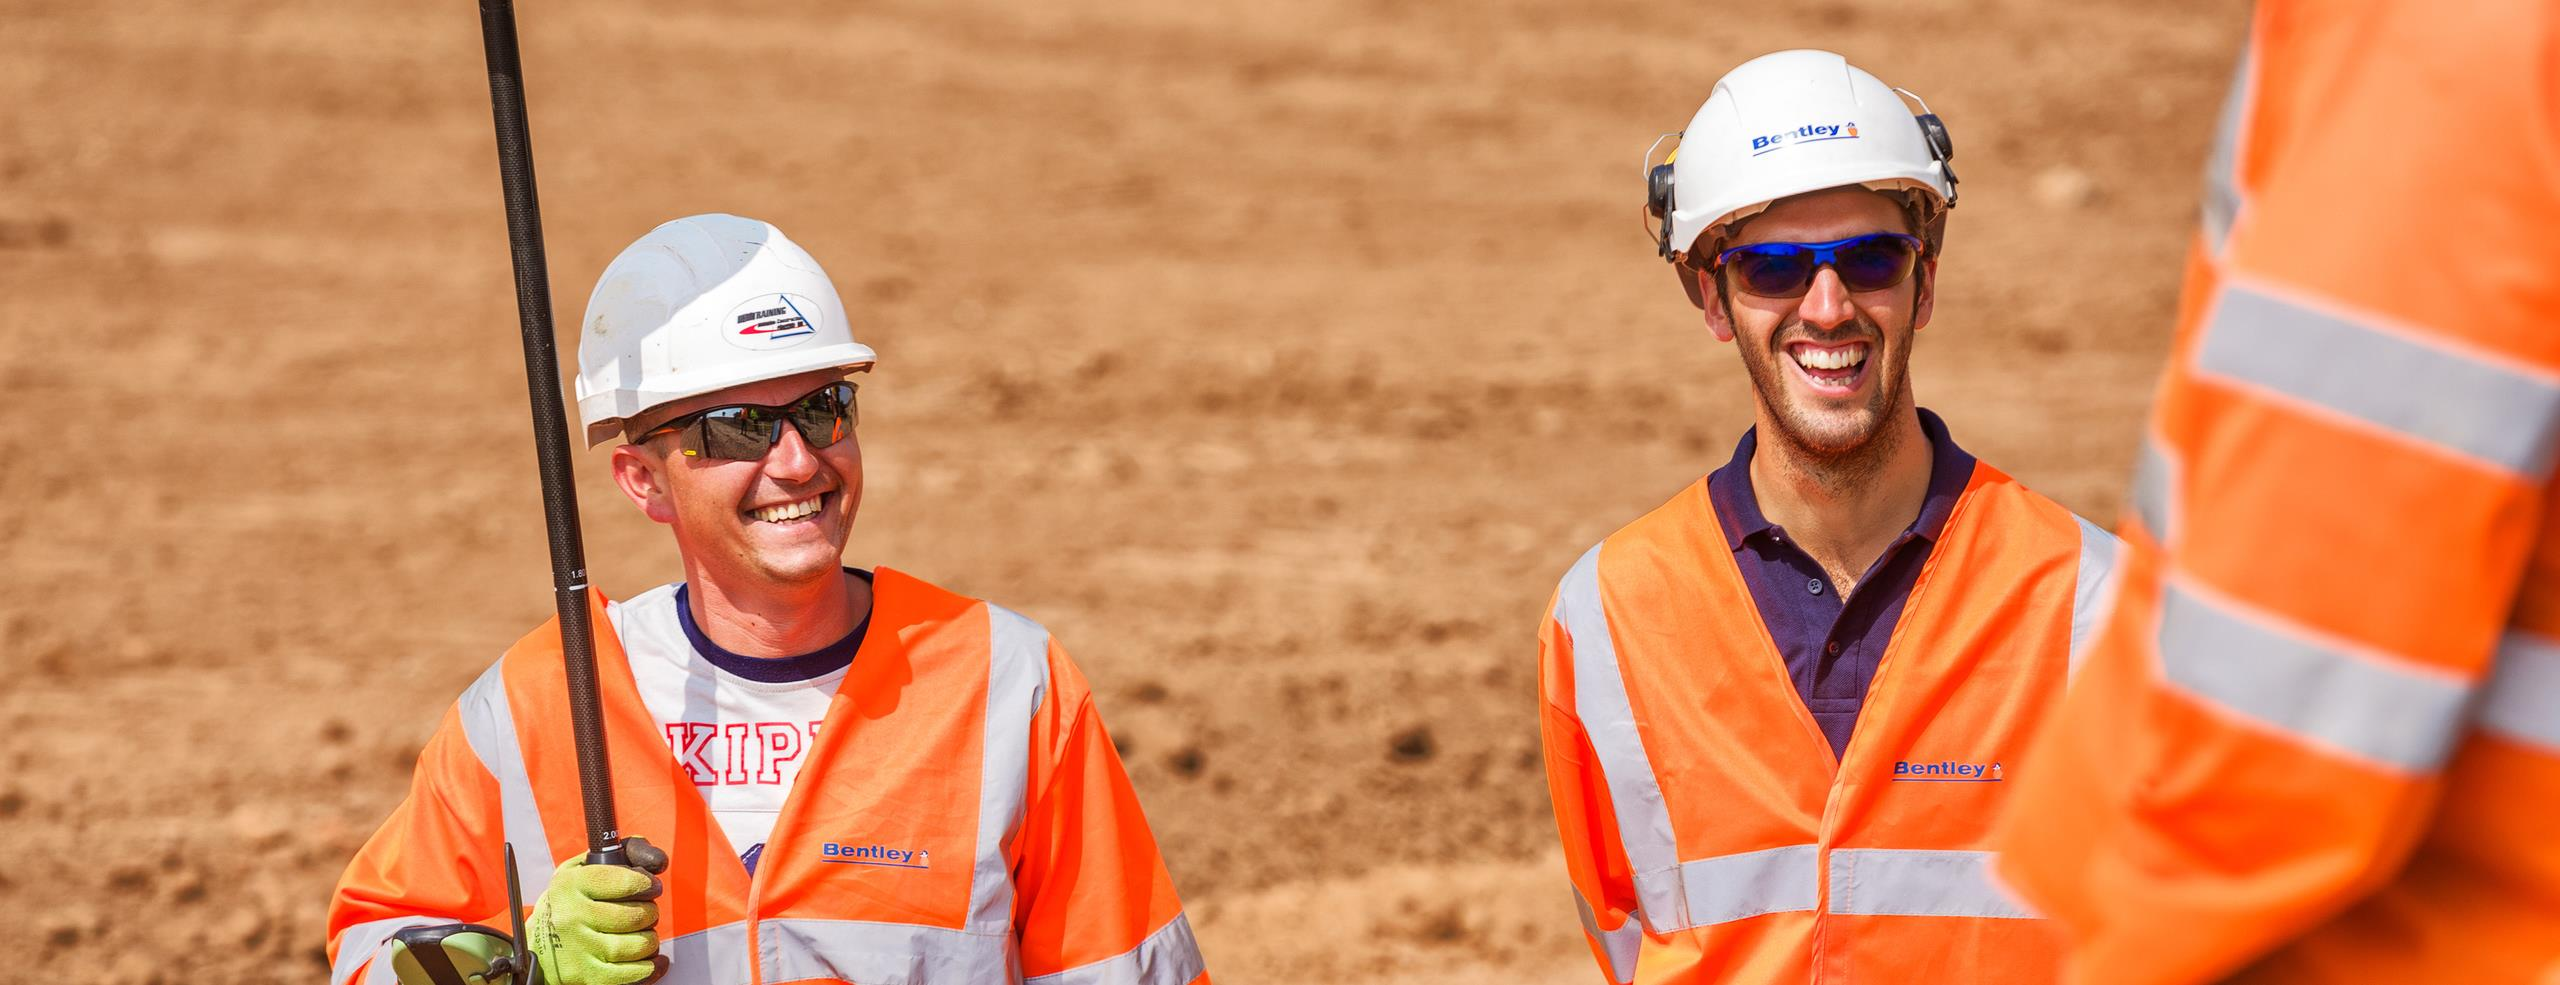 People are at the heart of our business. Whether you're looking for an